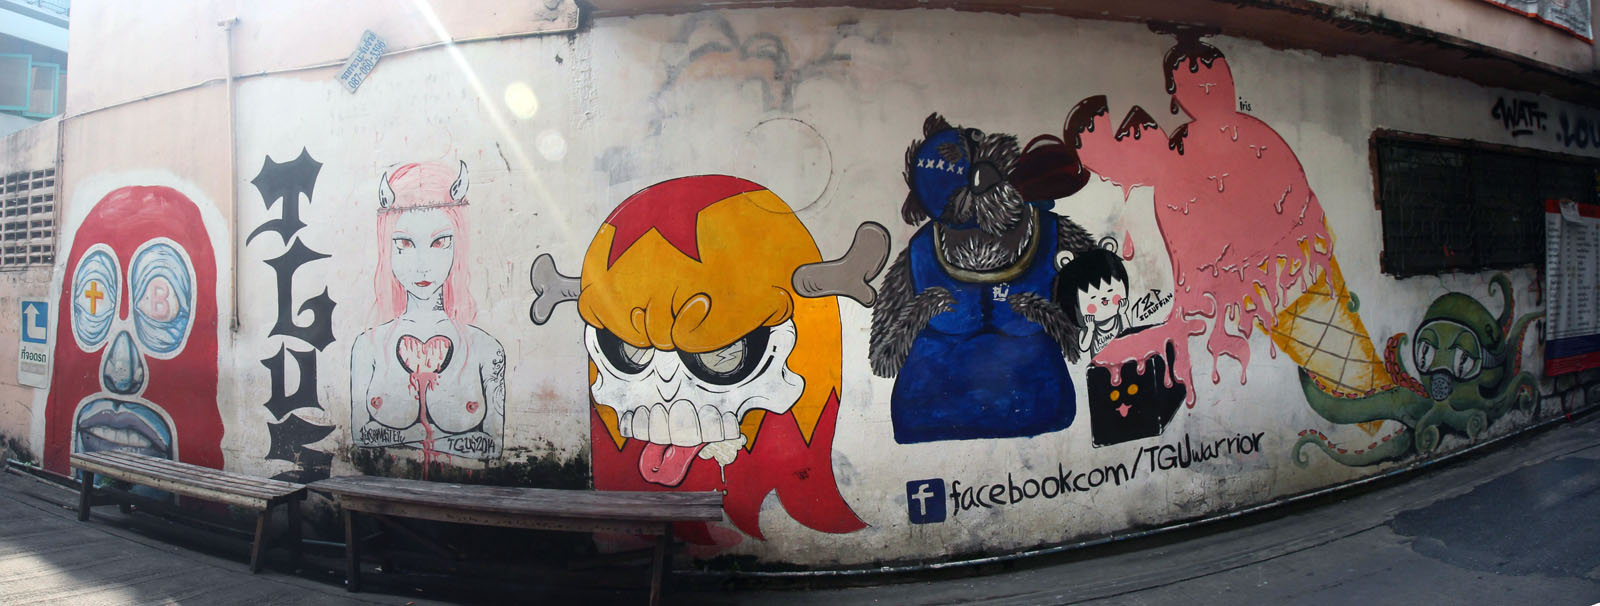 graffiti in Ratchathewi panorama